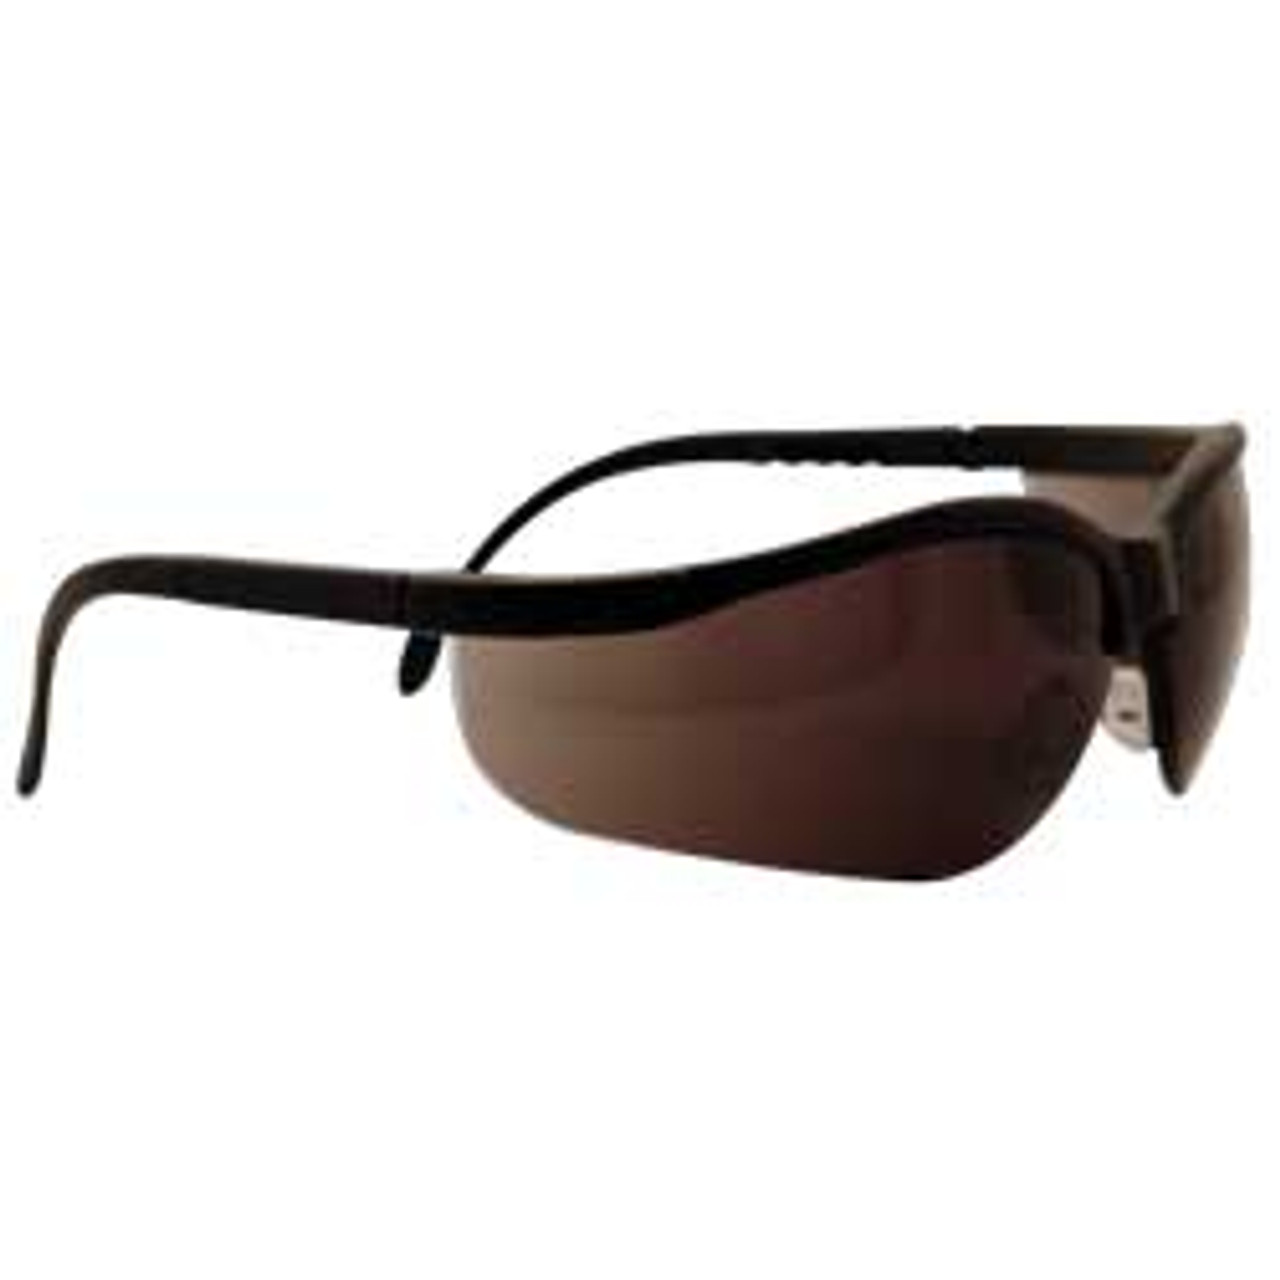 Bi-Focal Tinted Magnification Safety Glasses